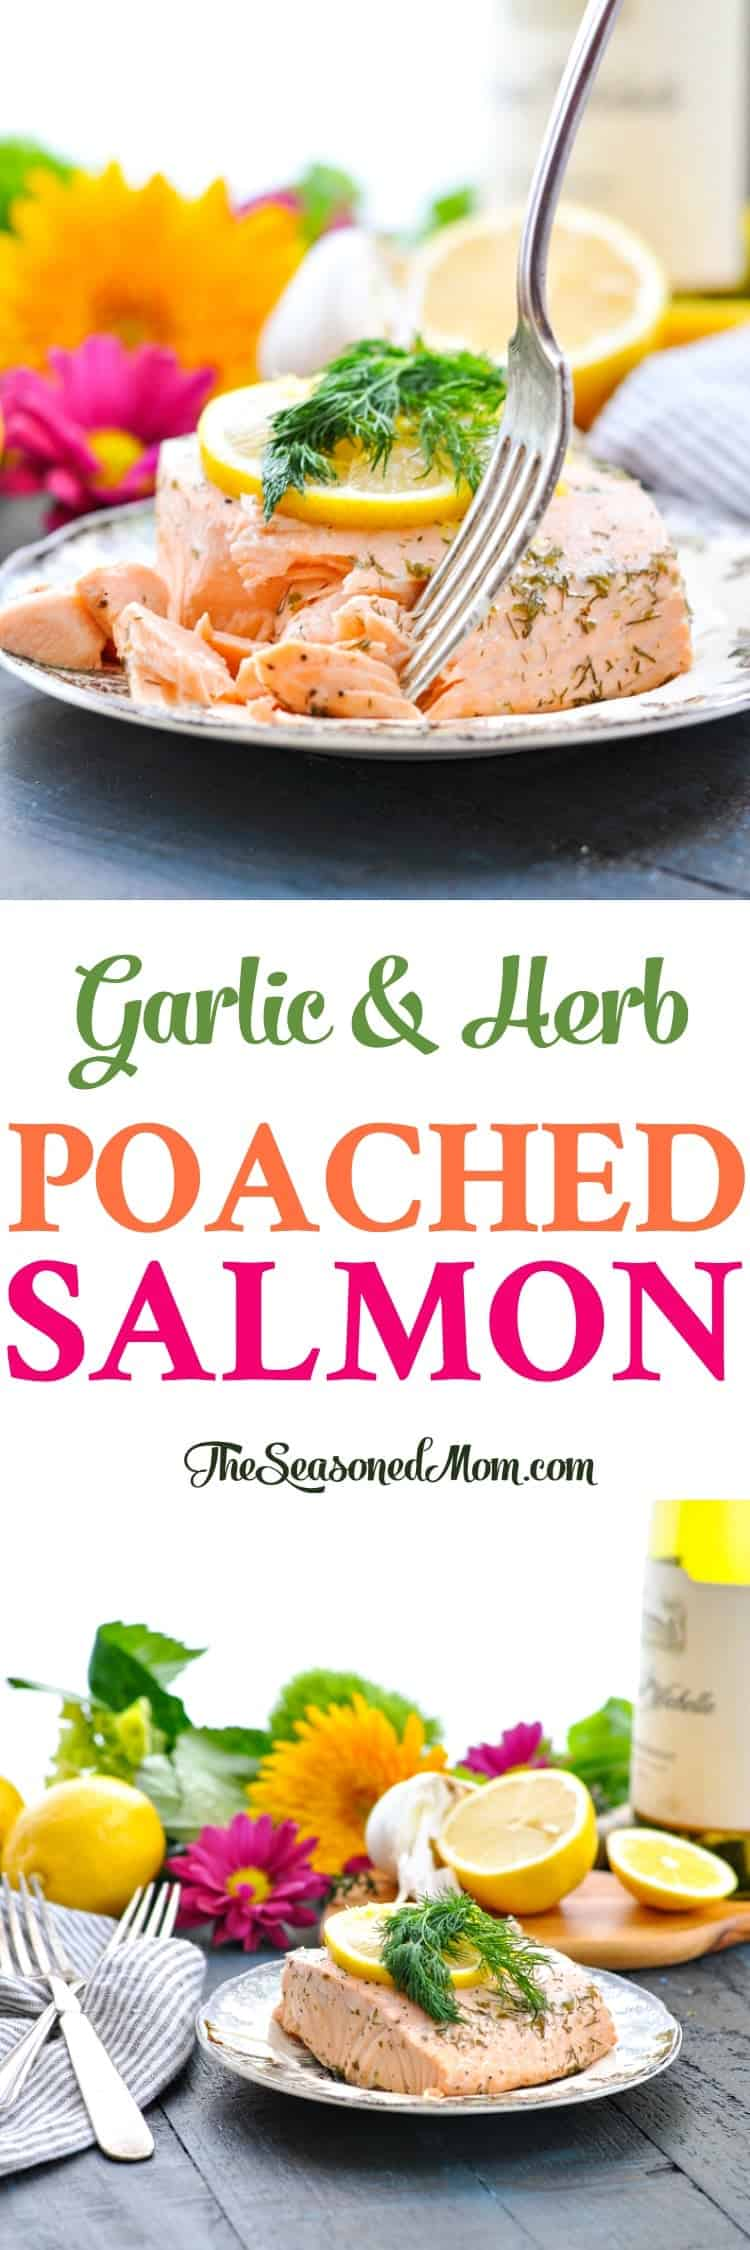 Long vertical image of poached salmon on a plate